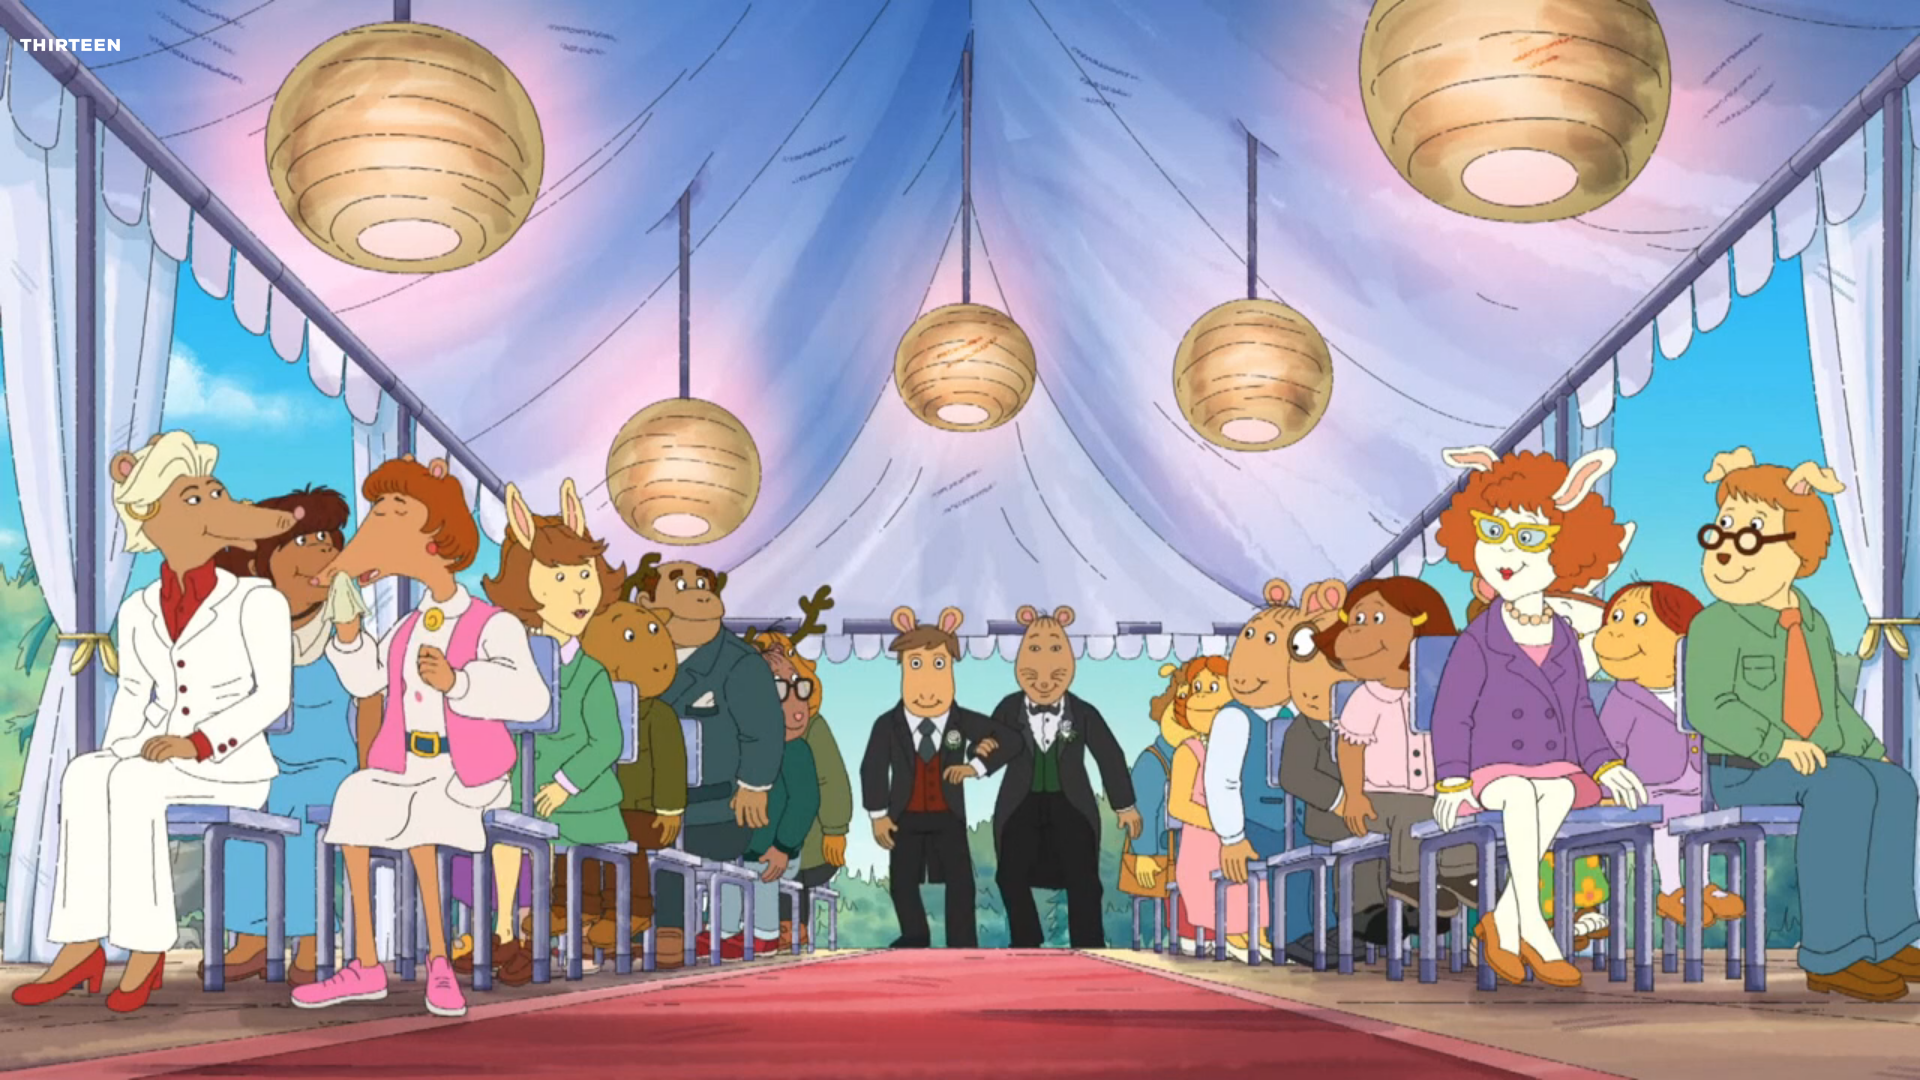 'Arthur' kicked off 22nd season on PBS with gay wedding